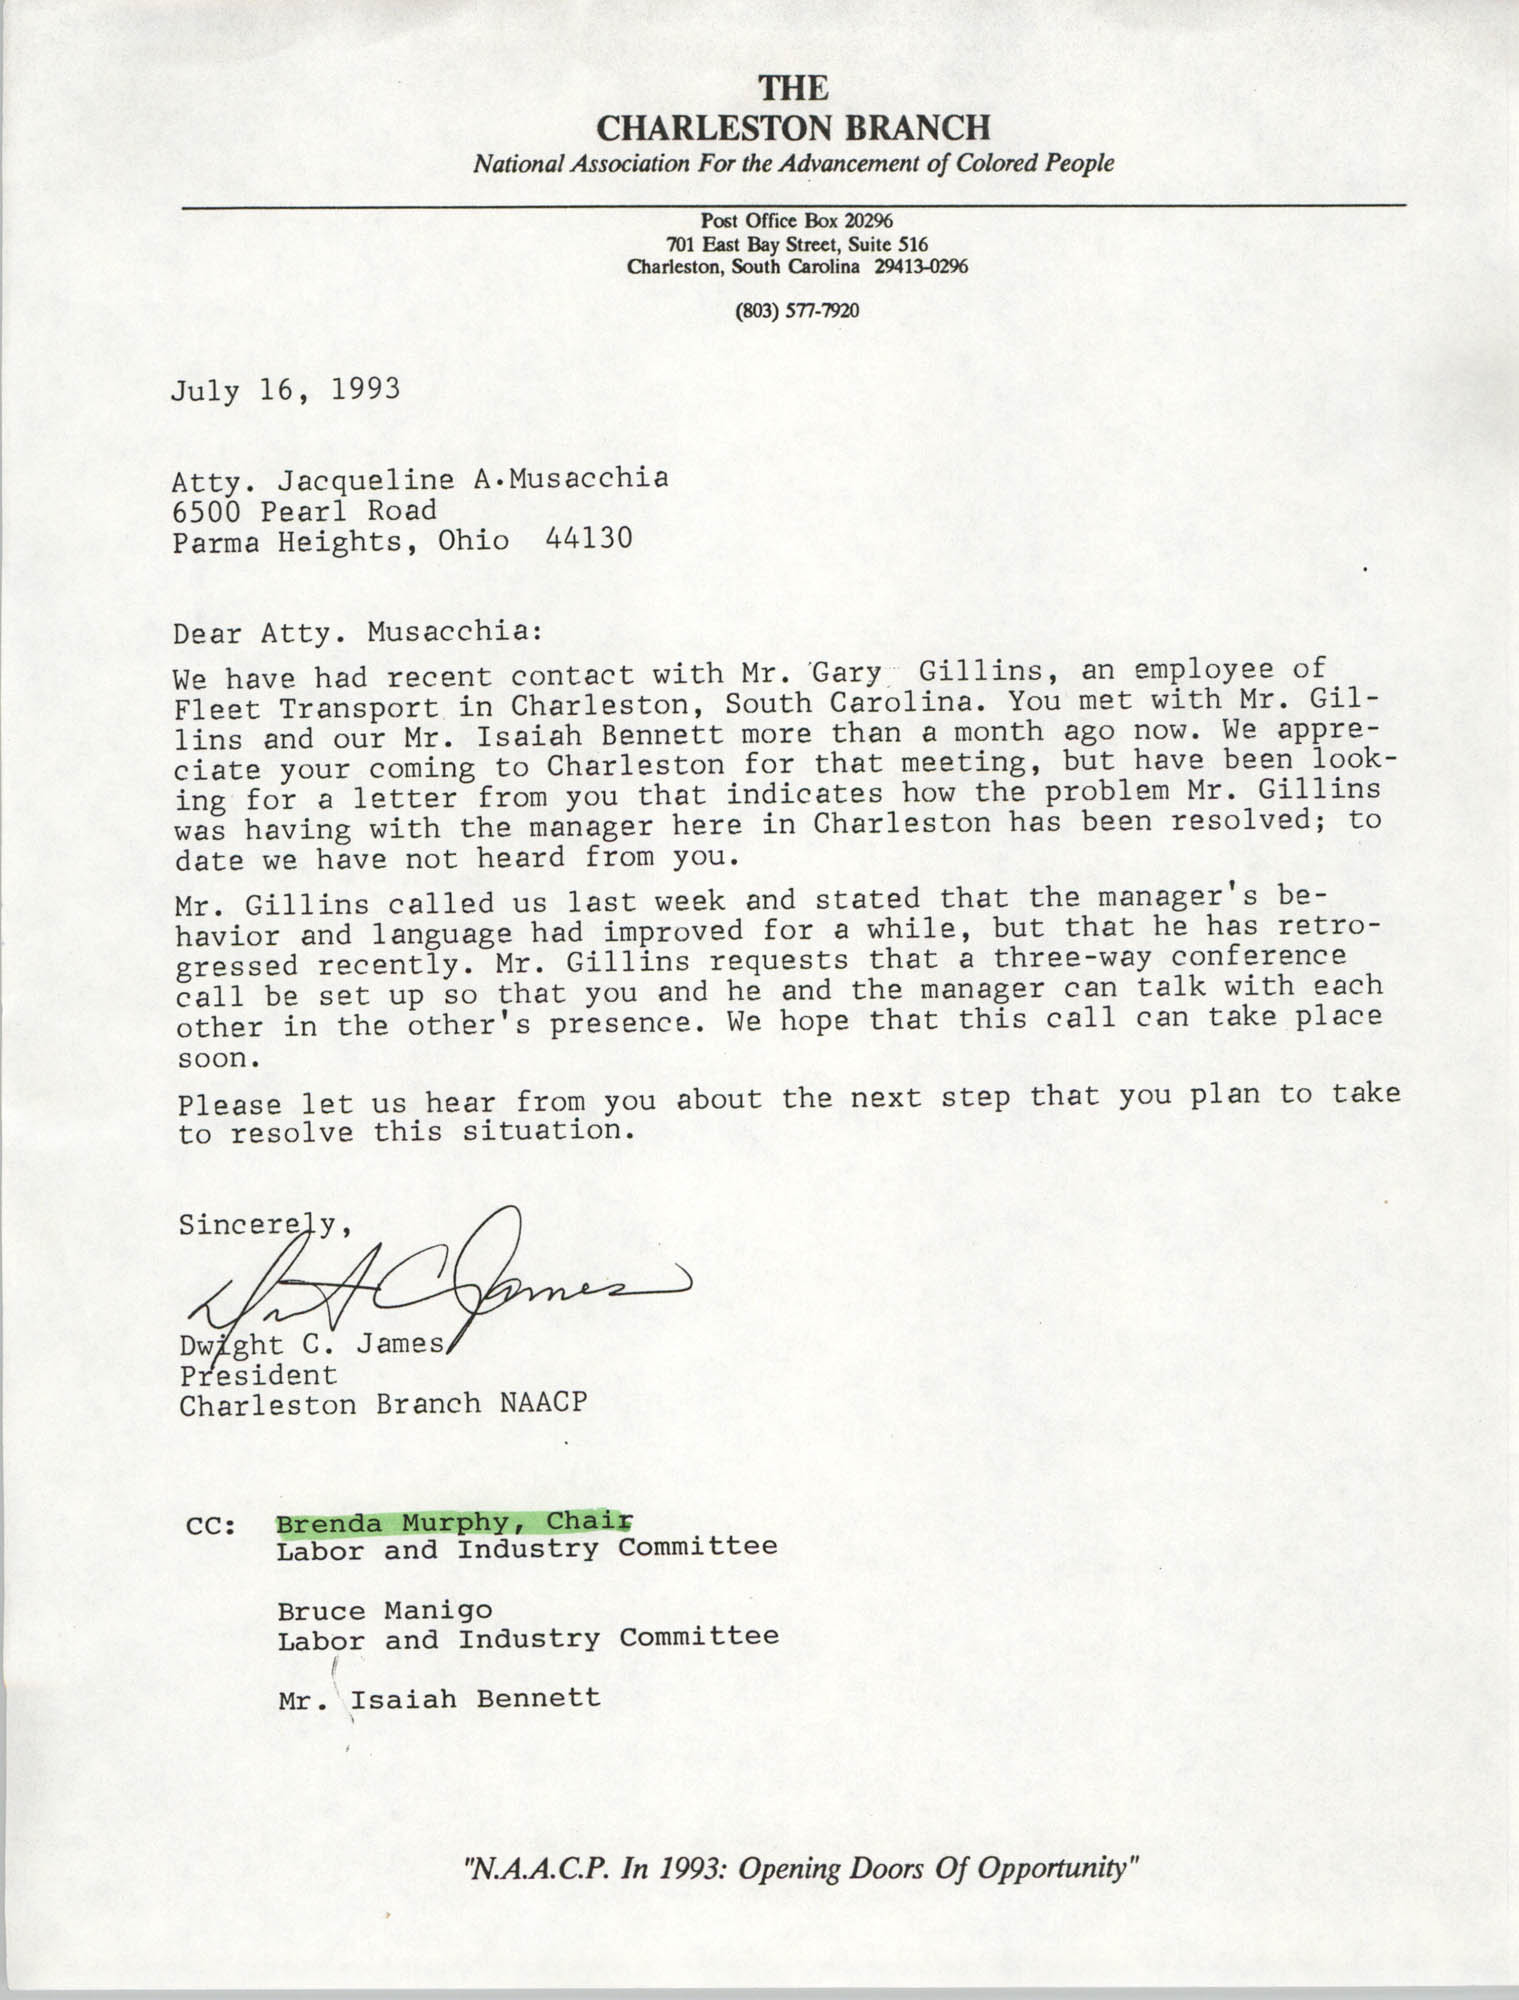 Letter from Dwight C. James to Jacqueline A. Musacchia, July 16, 1993